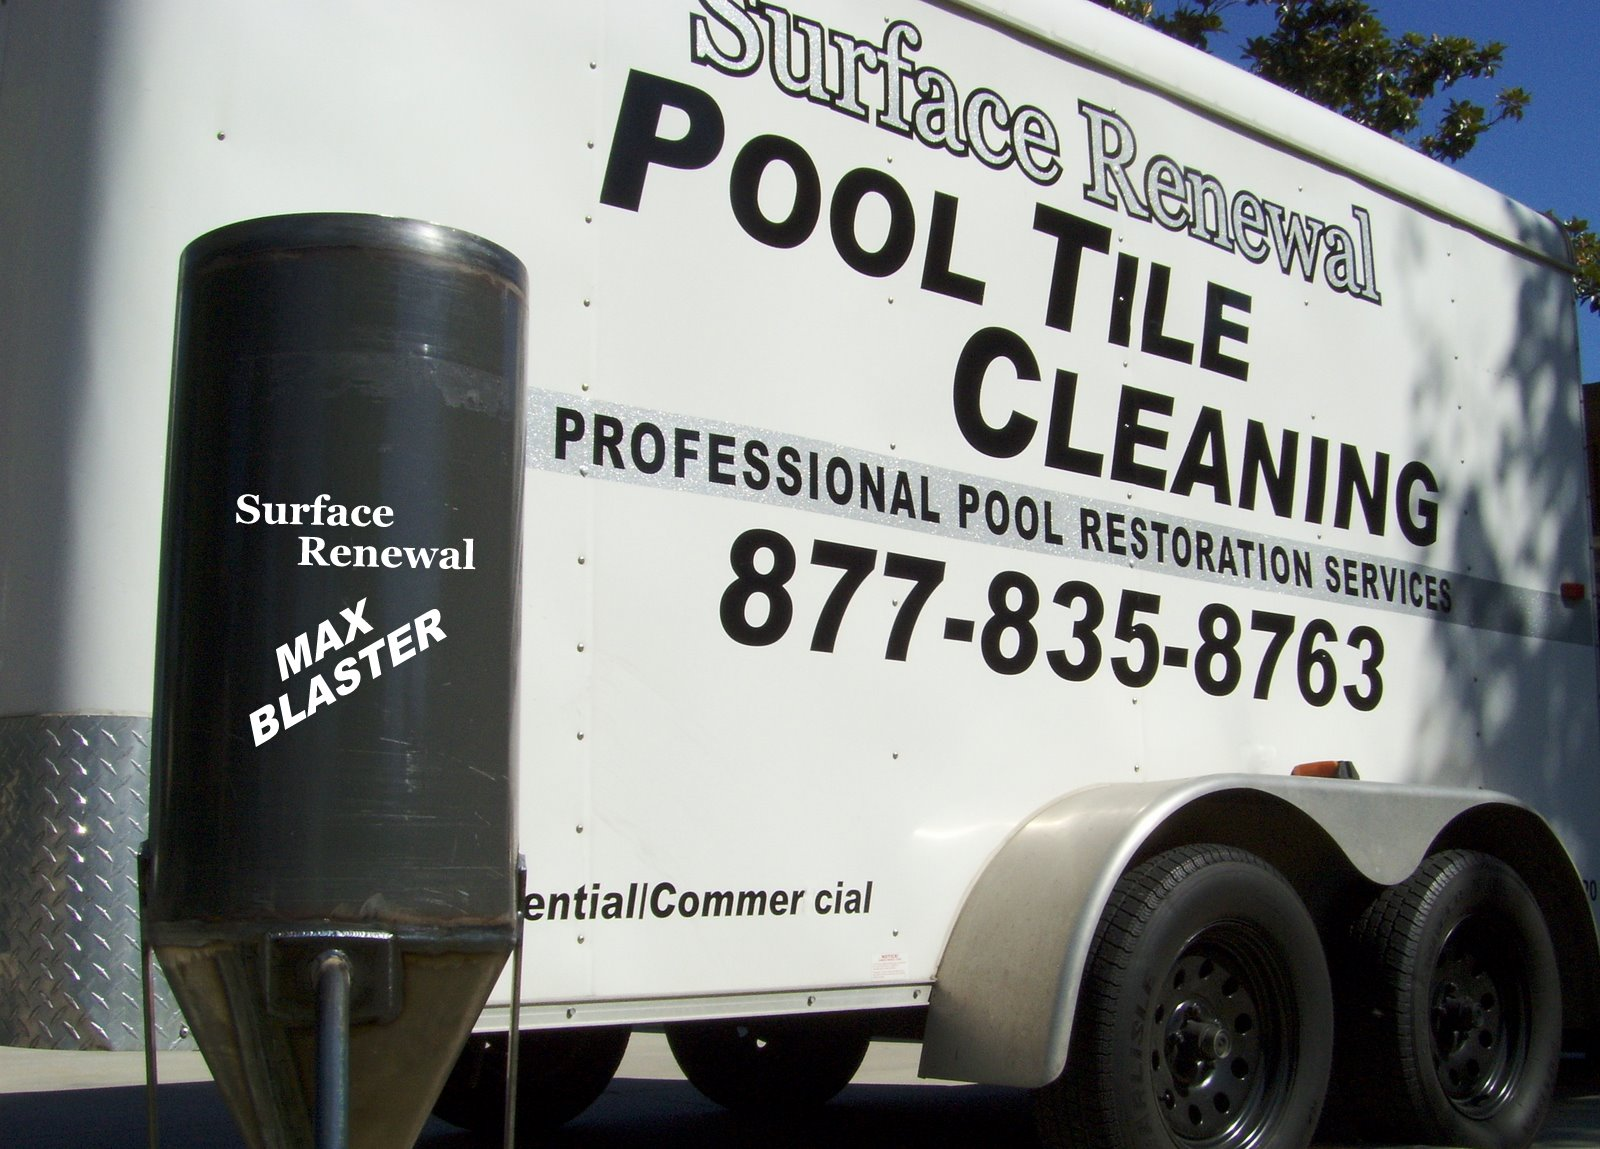 Pool Tile Cleaning Pro 877 835 8763